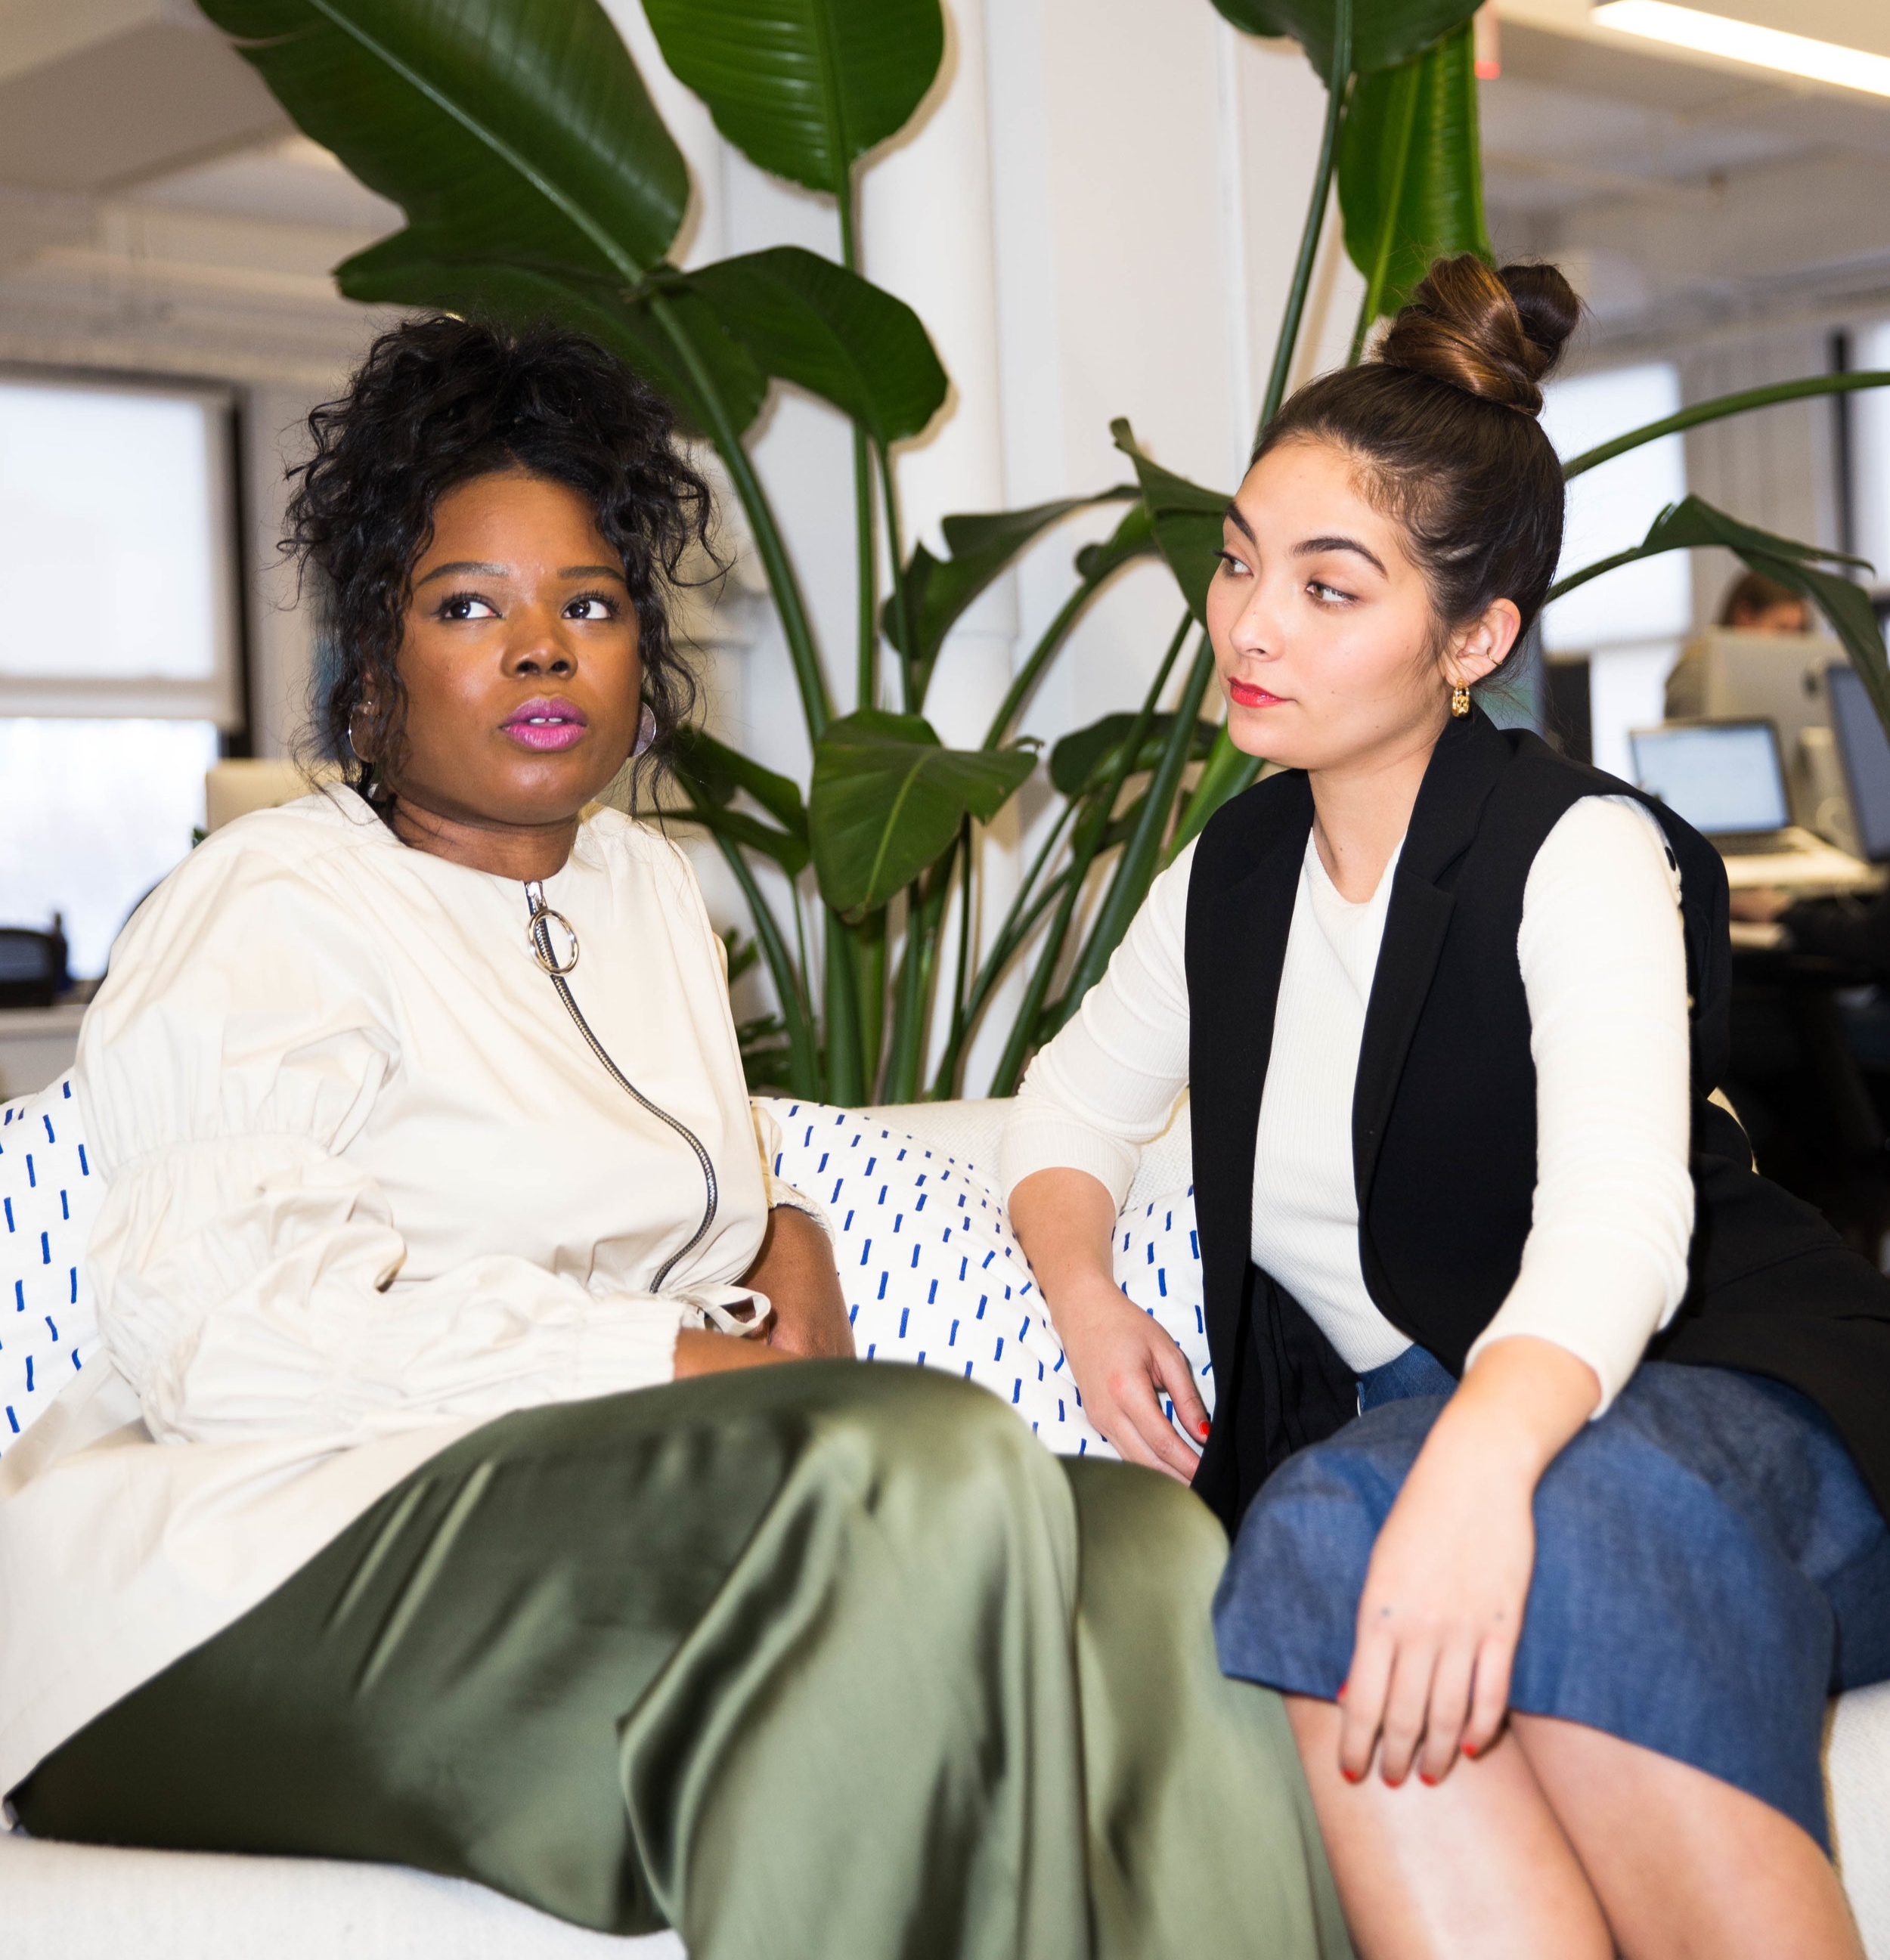 THIS IS WOMEN'S WORK: STEPPING UP STARTUP CULTURE